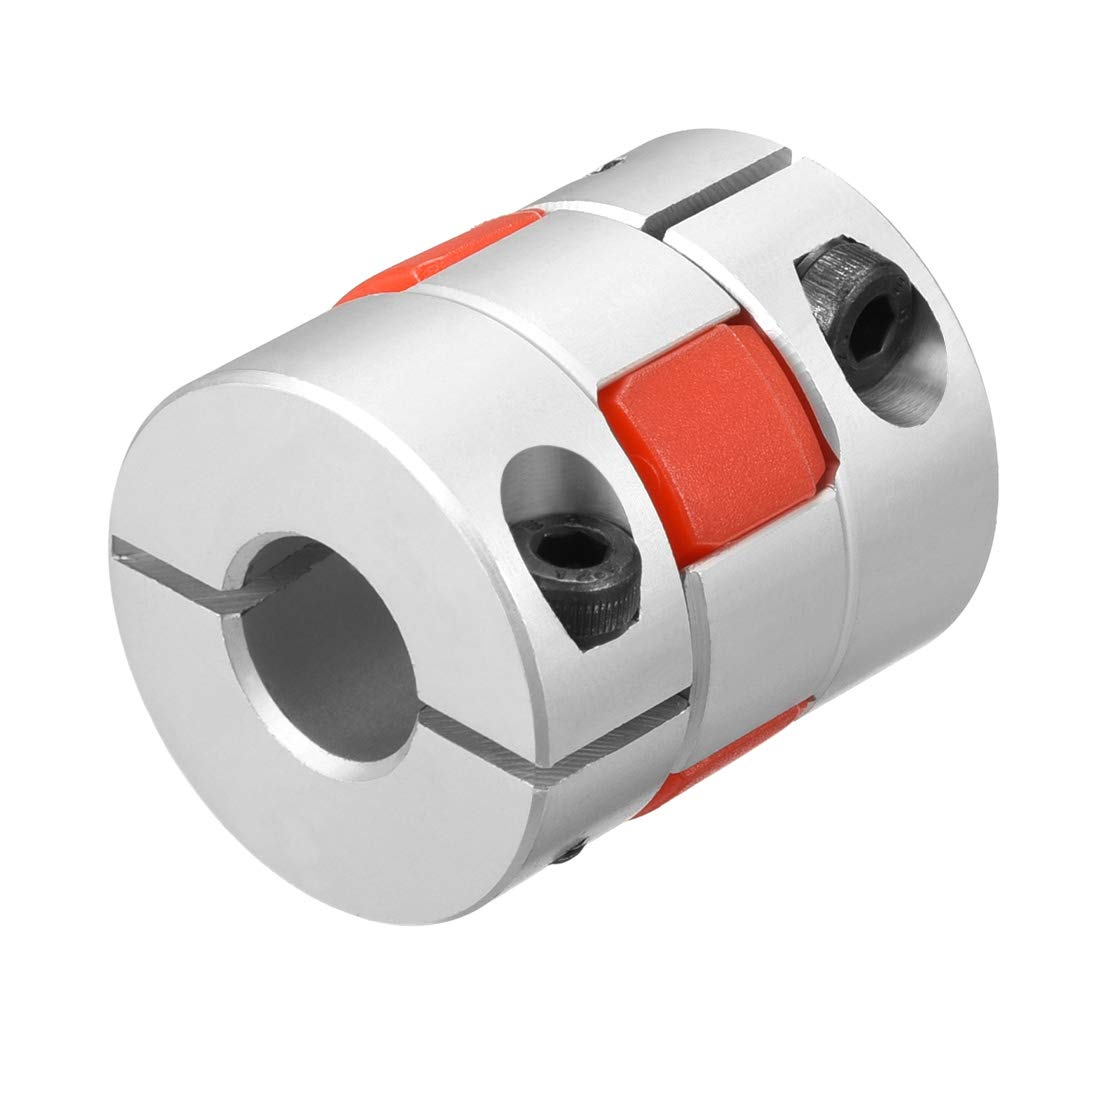 uxcell Shaft Coupling 15mm to 15mm Bore L35xD30 Flexible Coupler Joint for Servo Stepped Motor